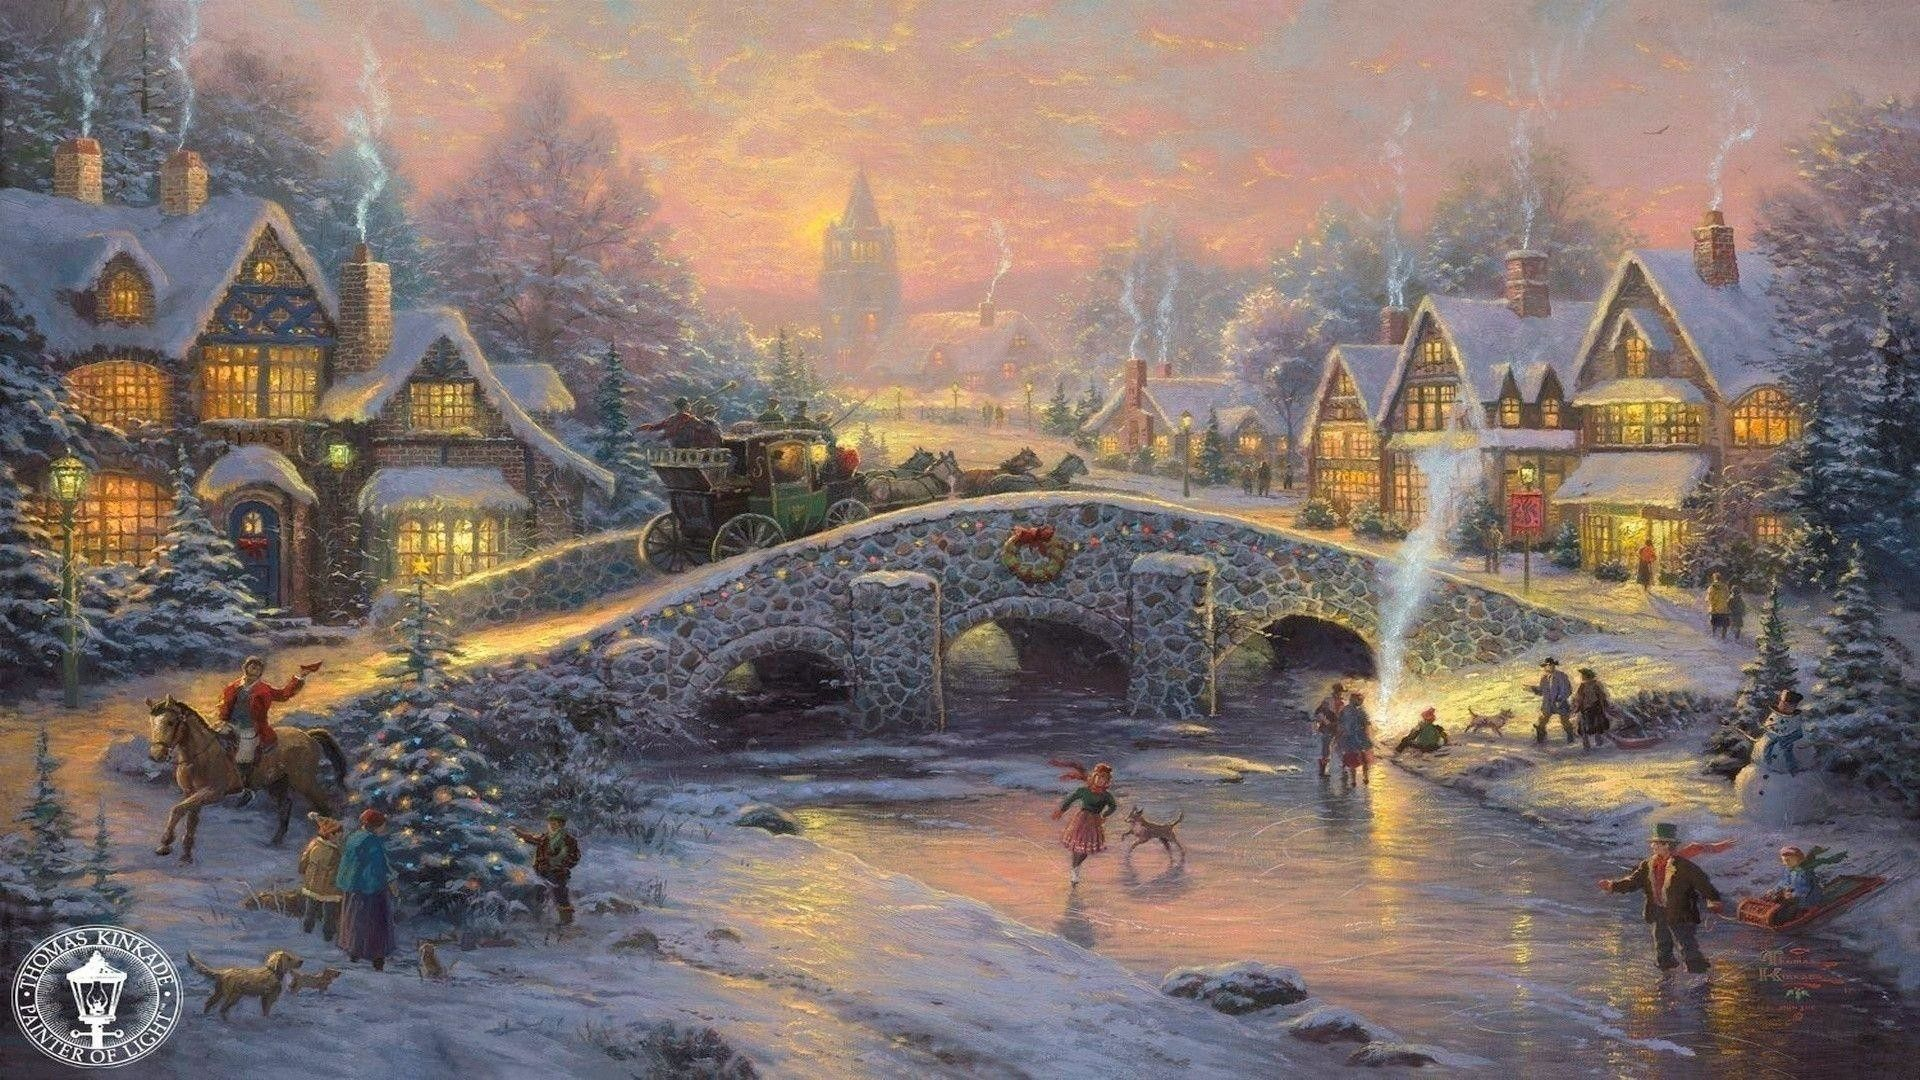 "1920x1080 Thomas Kinkade Christmas Backgrounds ·①""> · Download"